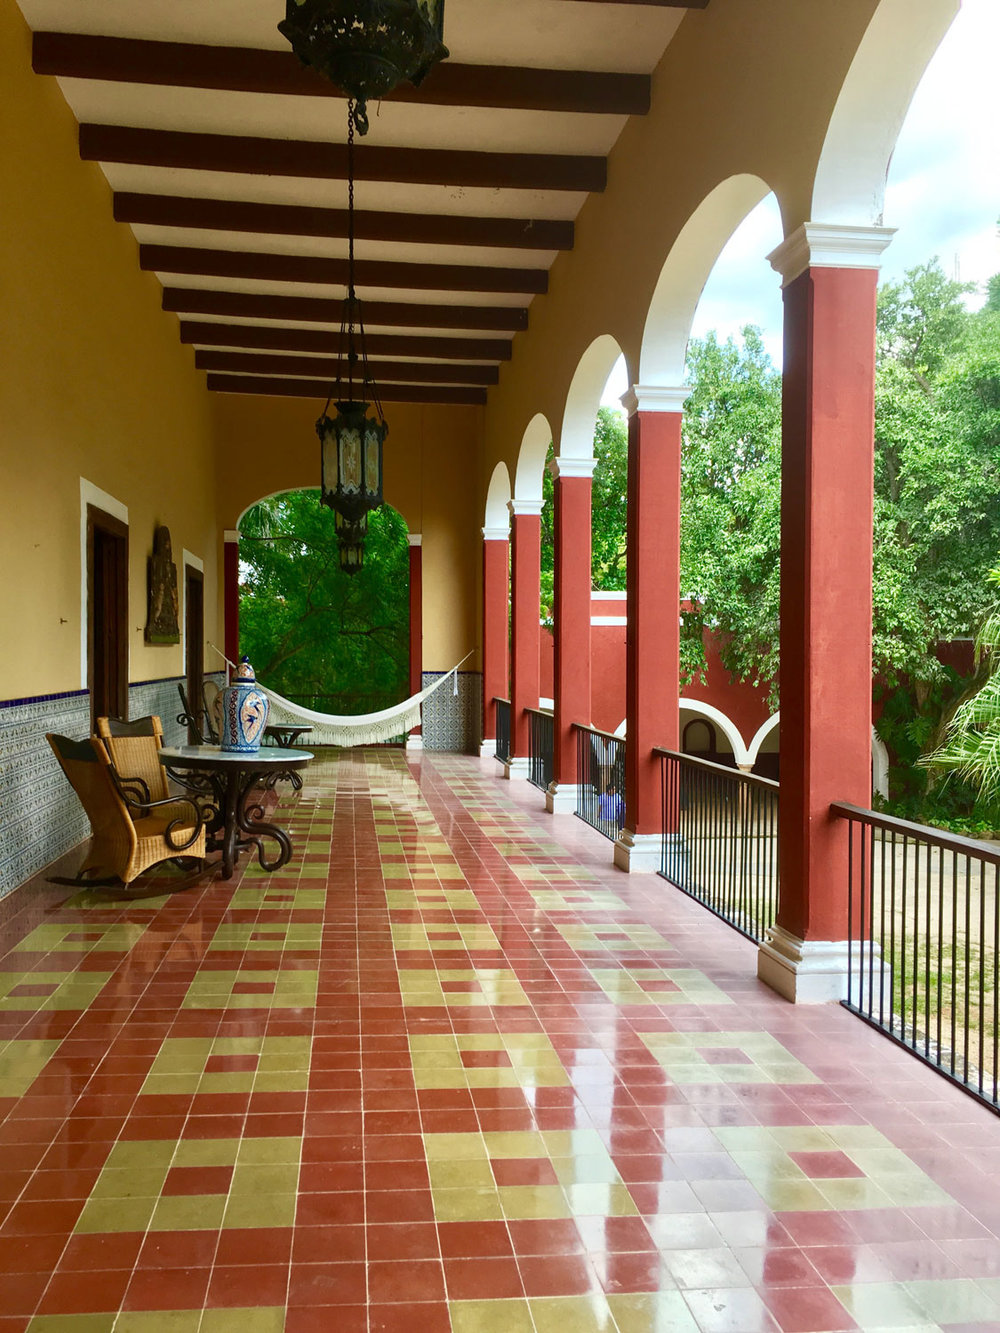 Hammocks_and_Ruins_Blog_Riviera_Maya_Mexico_Travel_Discover_Yucatan_What_to_do_Hacienda_Sotuta_de_Peon_56.jpg